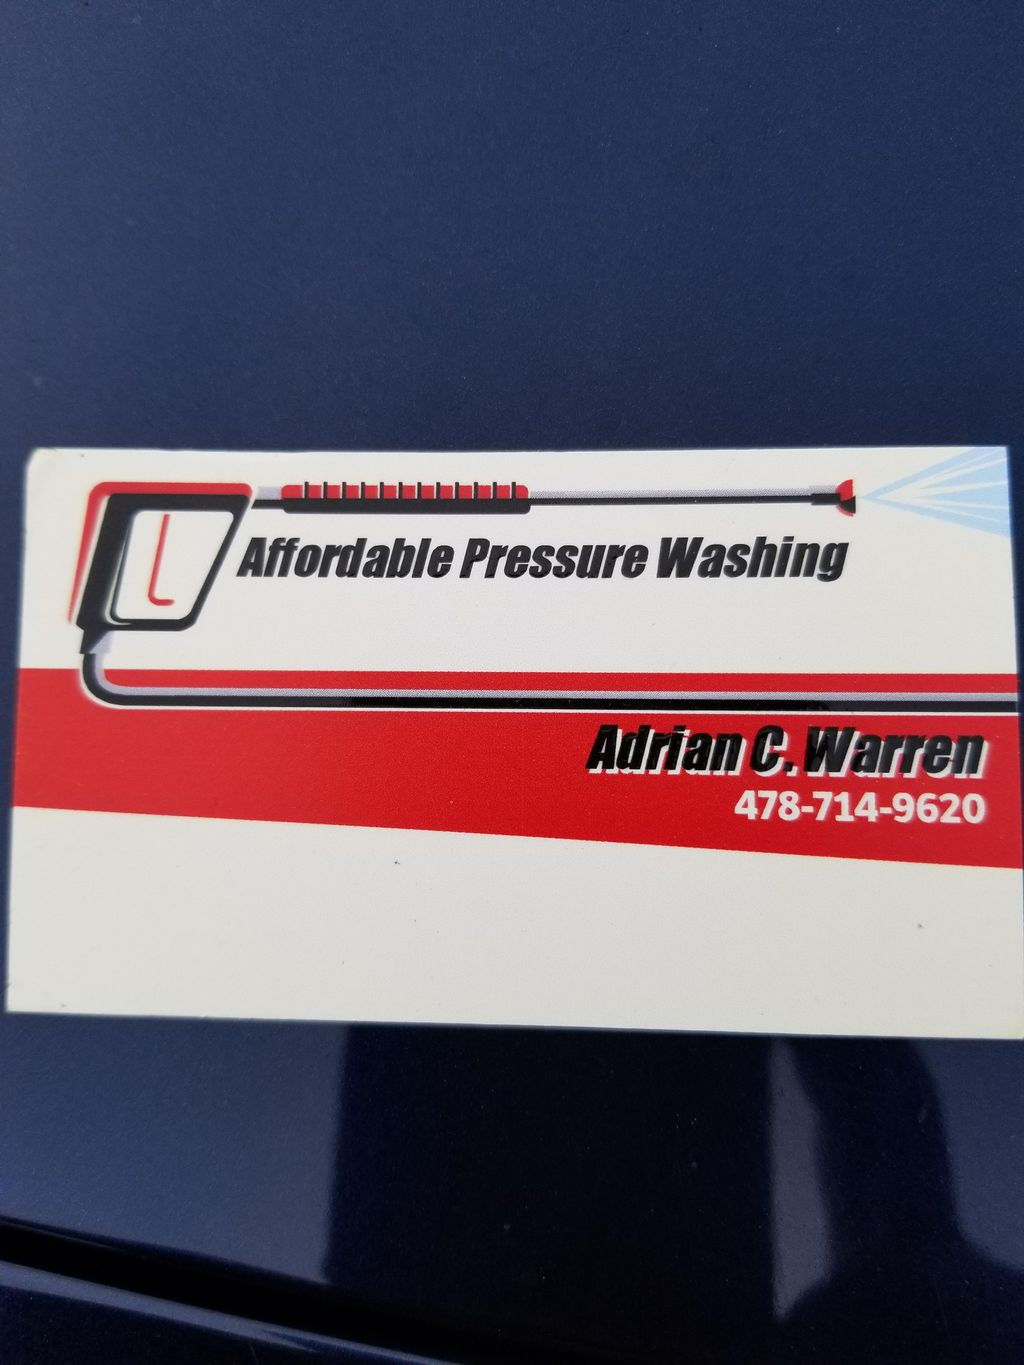 Affordable pressure washing